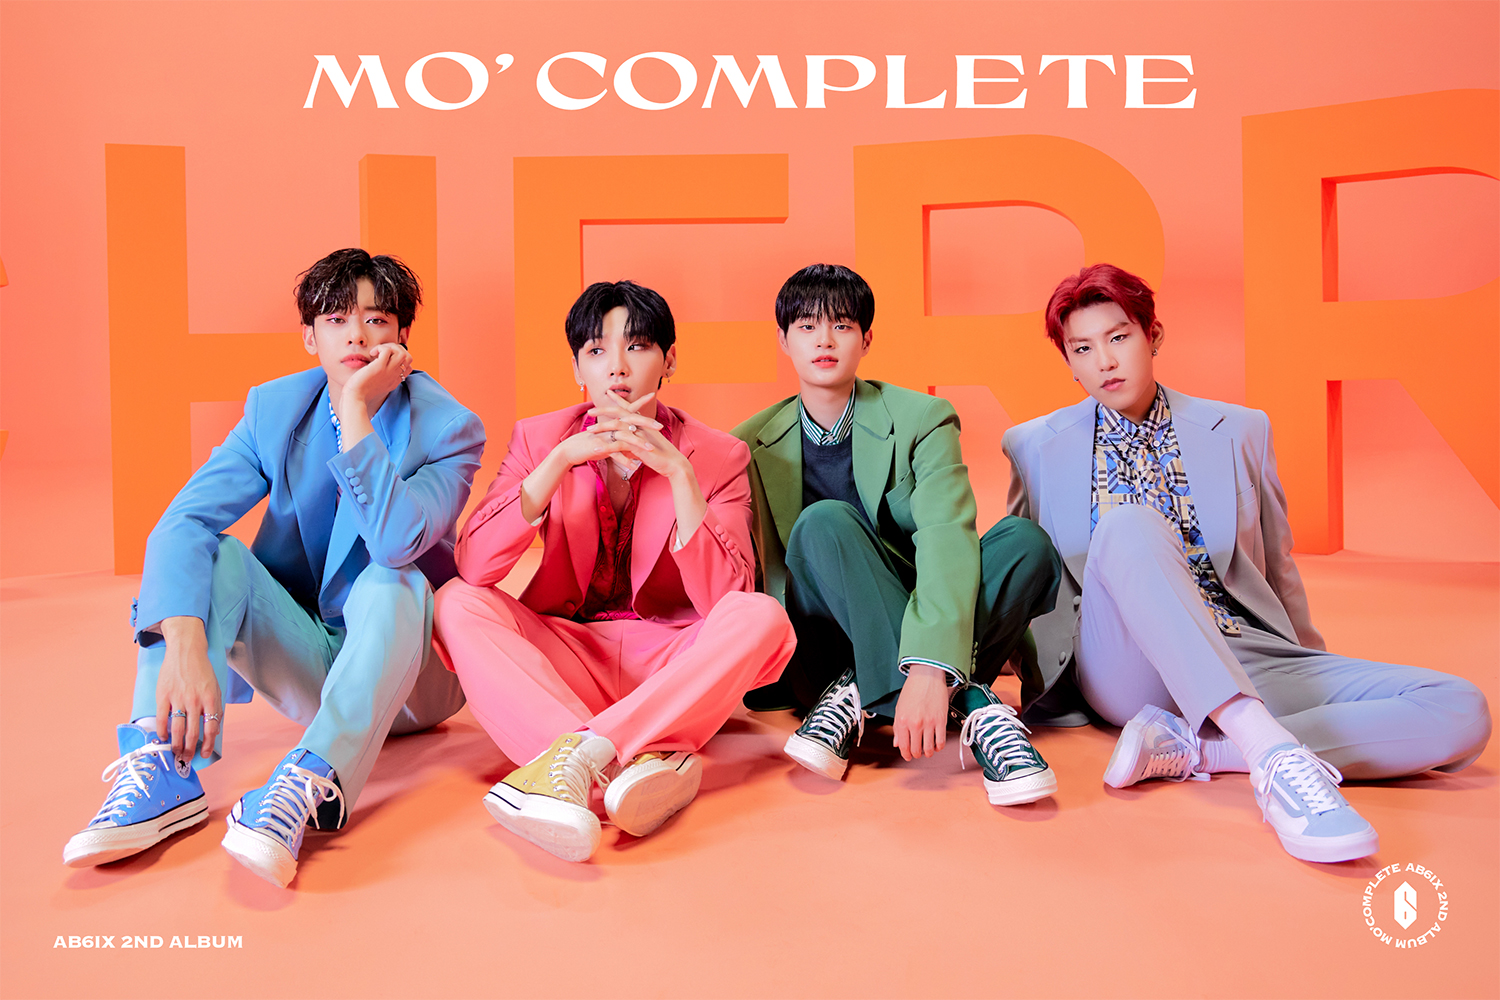 AB6IX, 'MO' COMPLETE' first concept photo released… 4 person 4 color suit